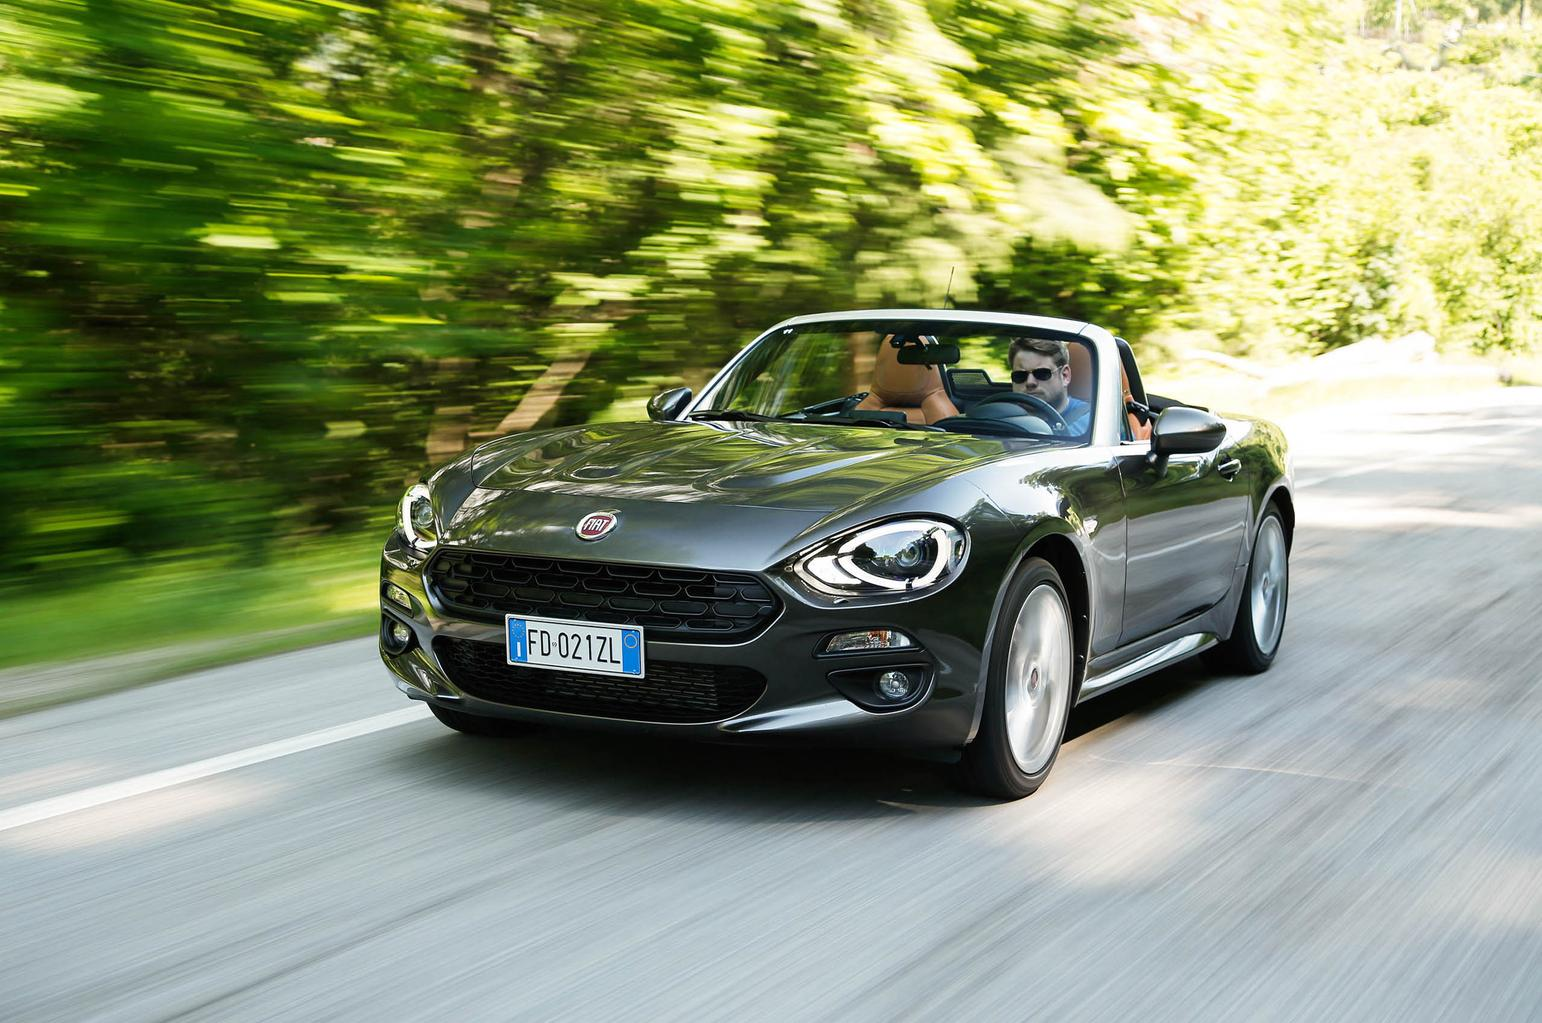 2016 Fiat 124 Spider review